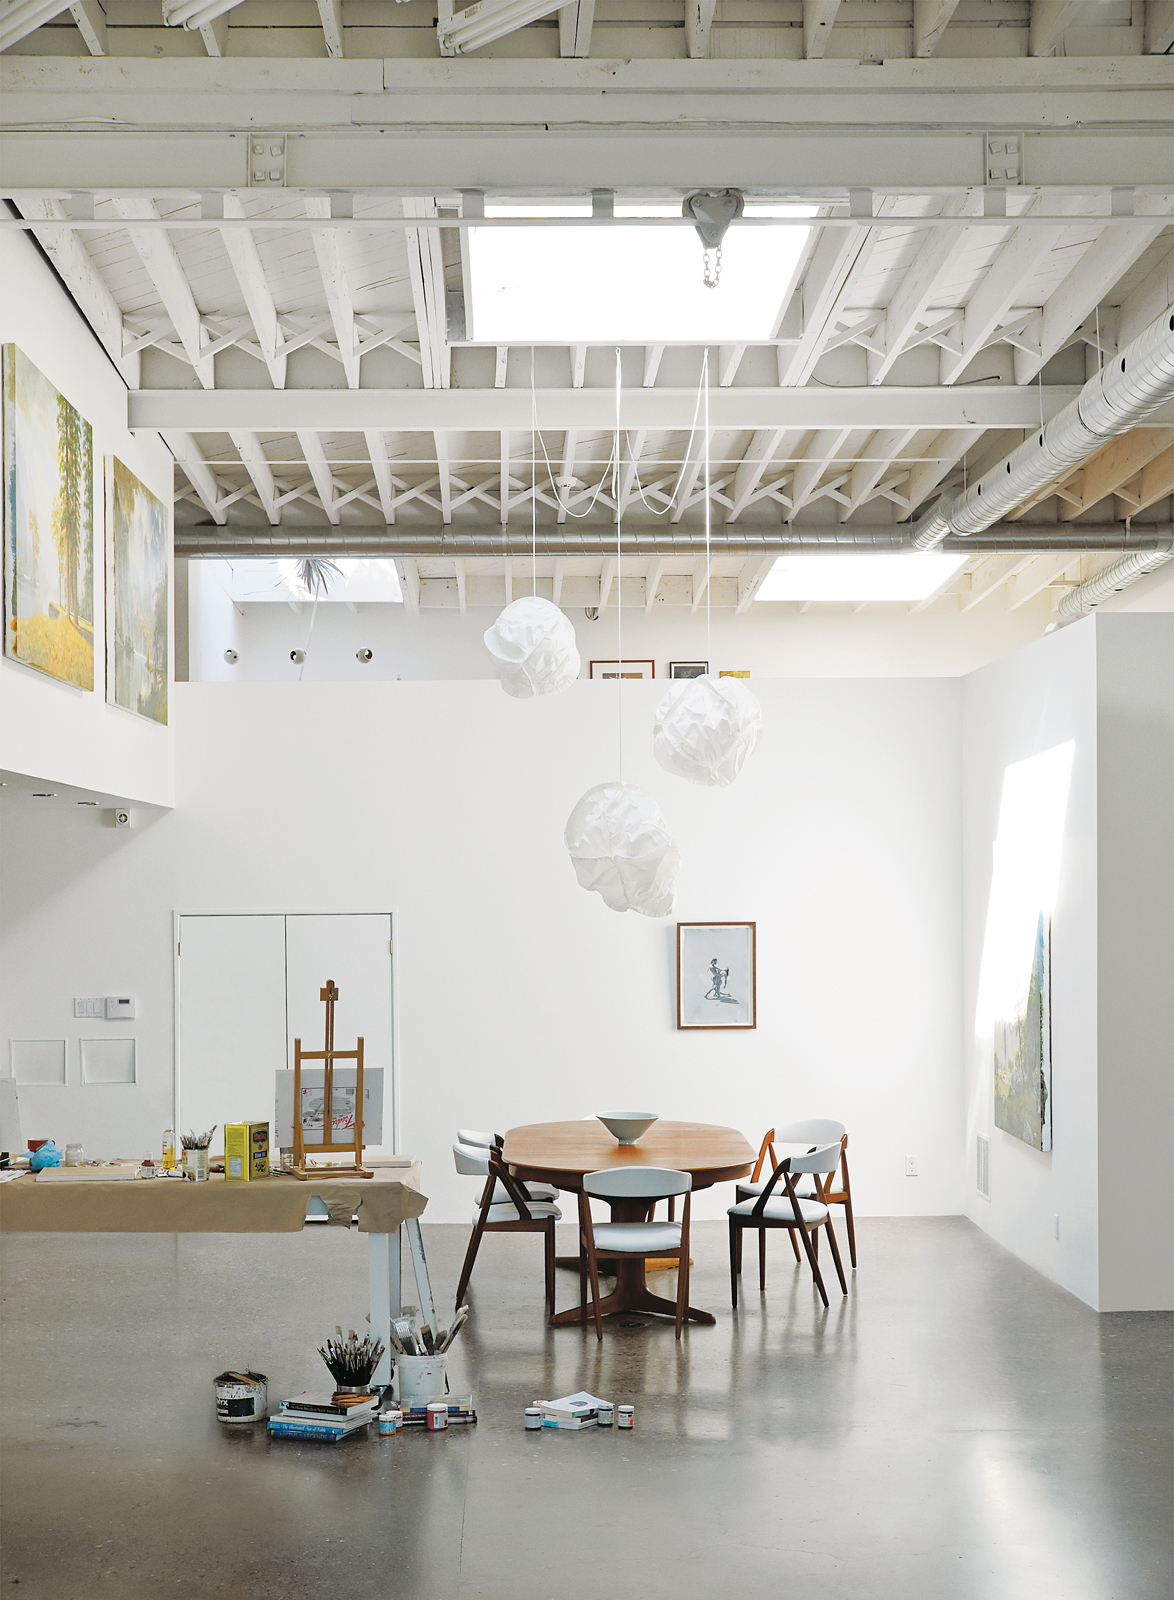 Dining area with vintage Danish dining set and Cloud pendants by Frank Gehry